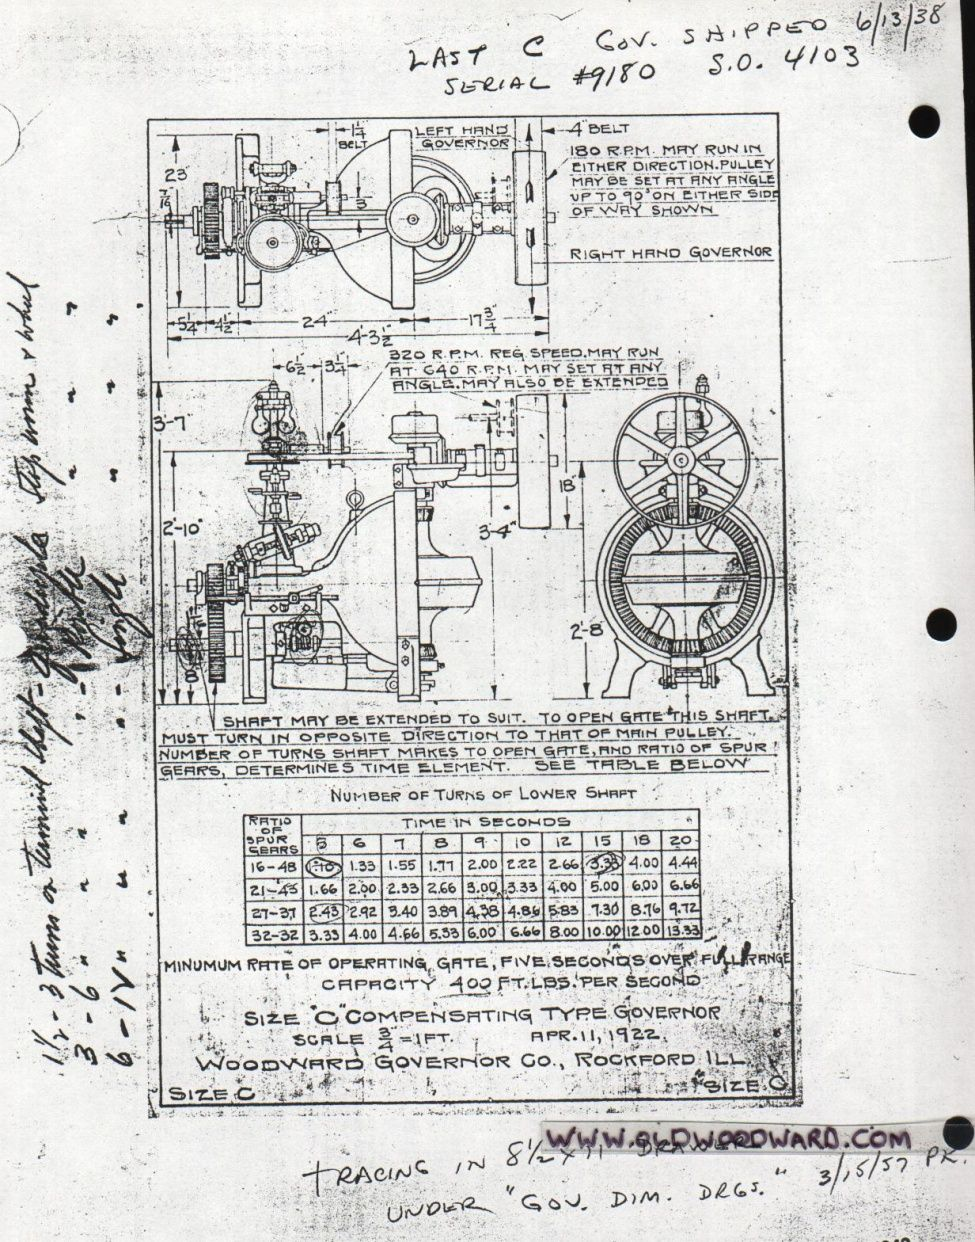 Drawing with dimensions of engine schematic free download wiring vintage woodward compensating type mechanical governor drawing drawing with dimensions of engine schematic 45 gun drawings schematics schematic symbols buycottarizona Images